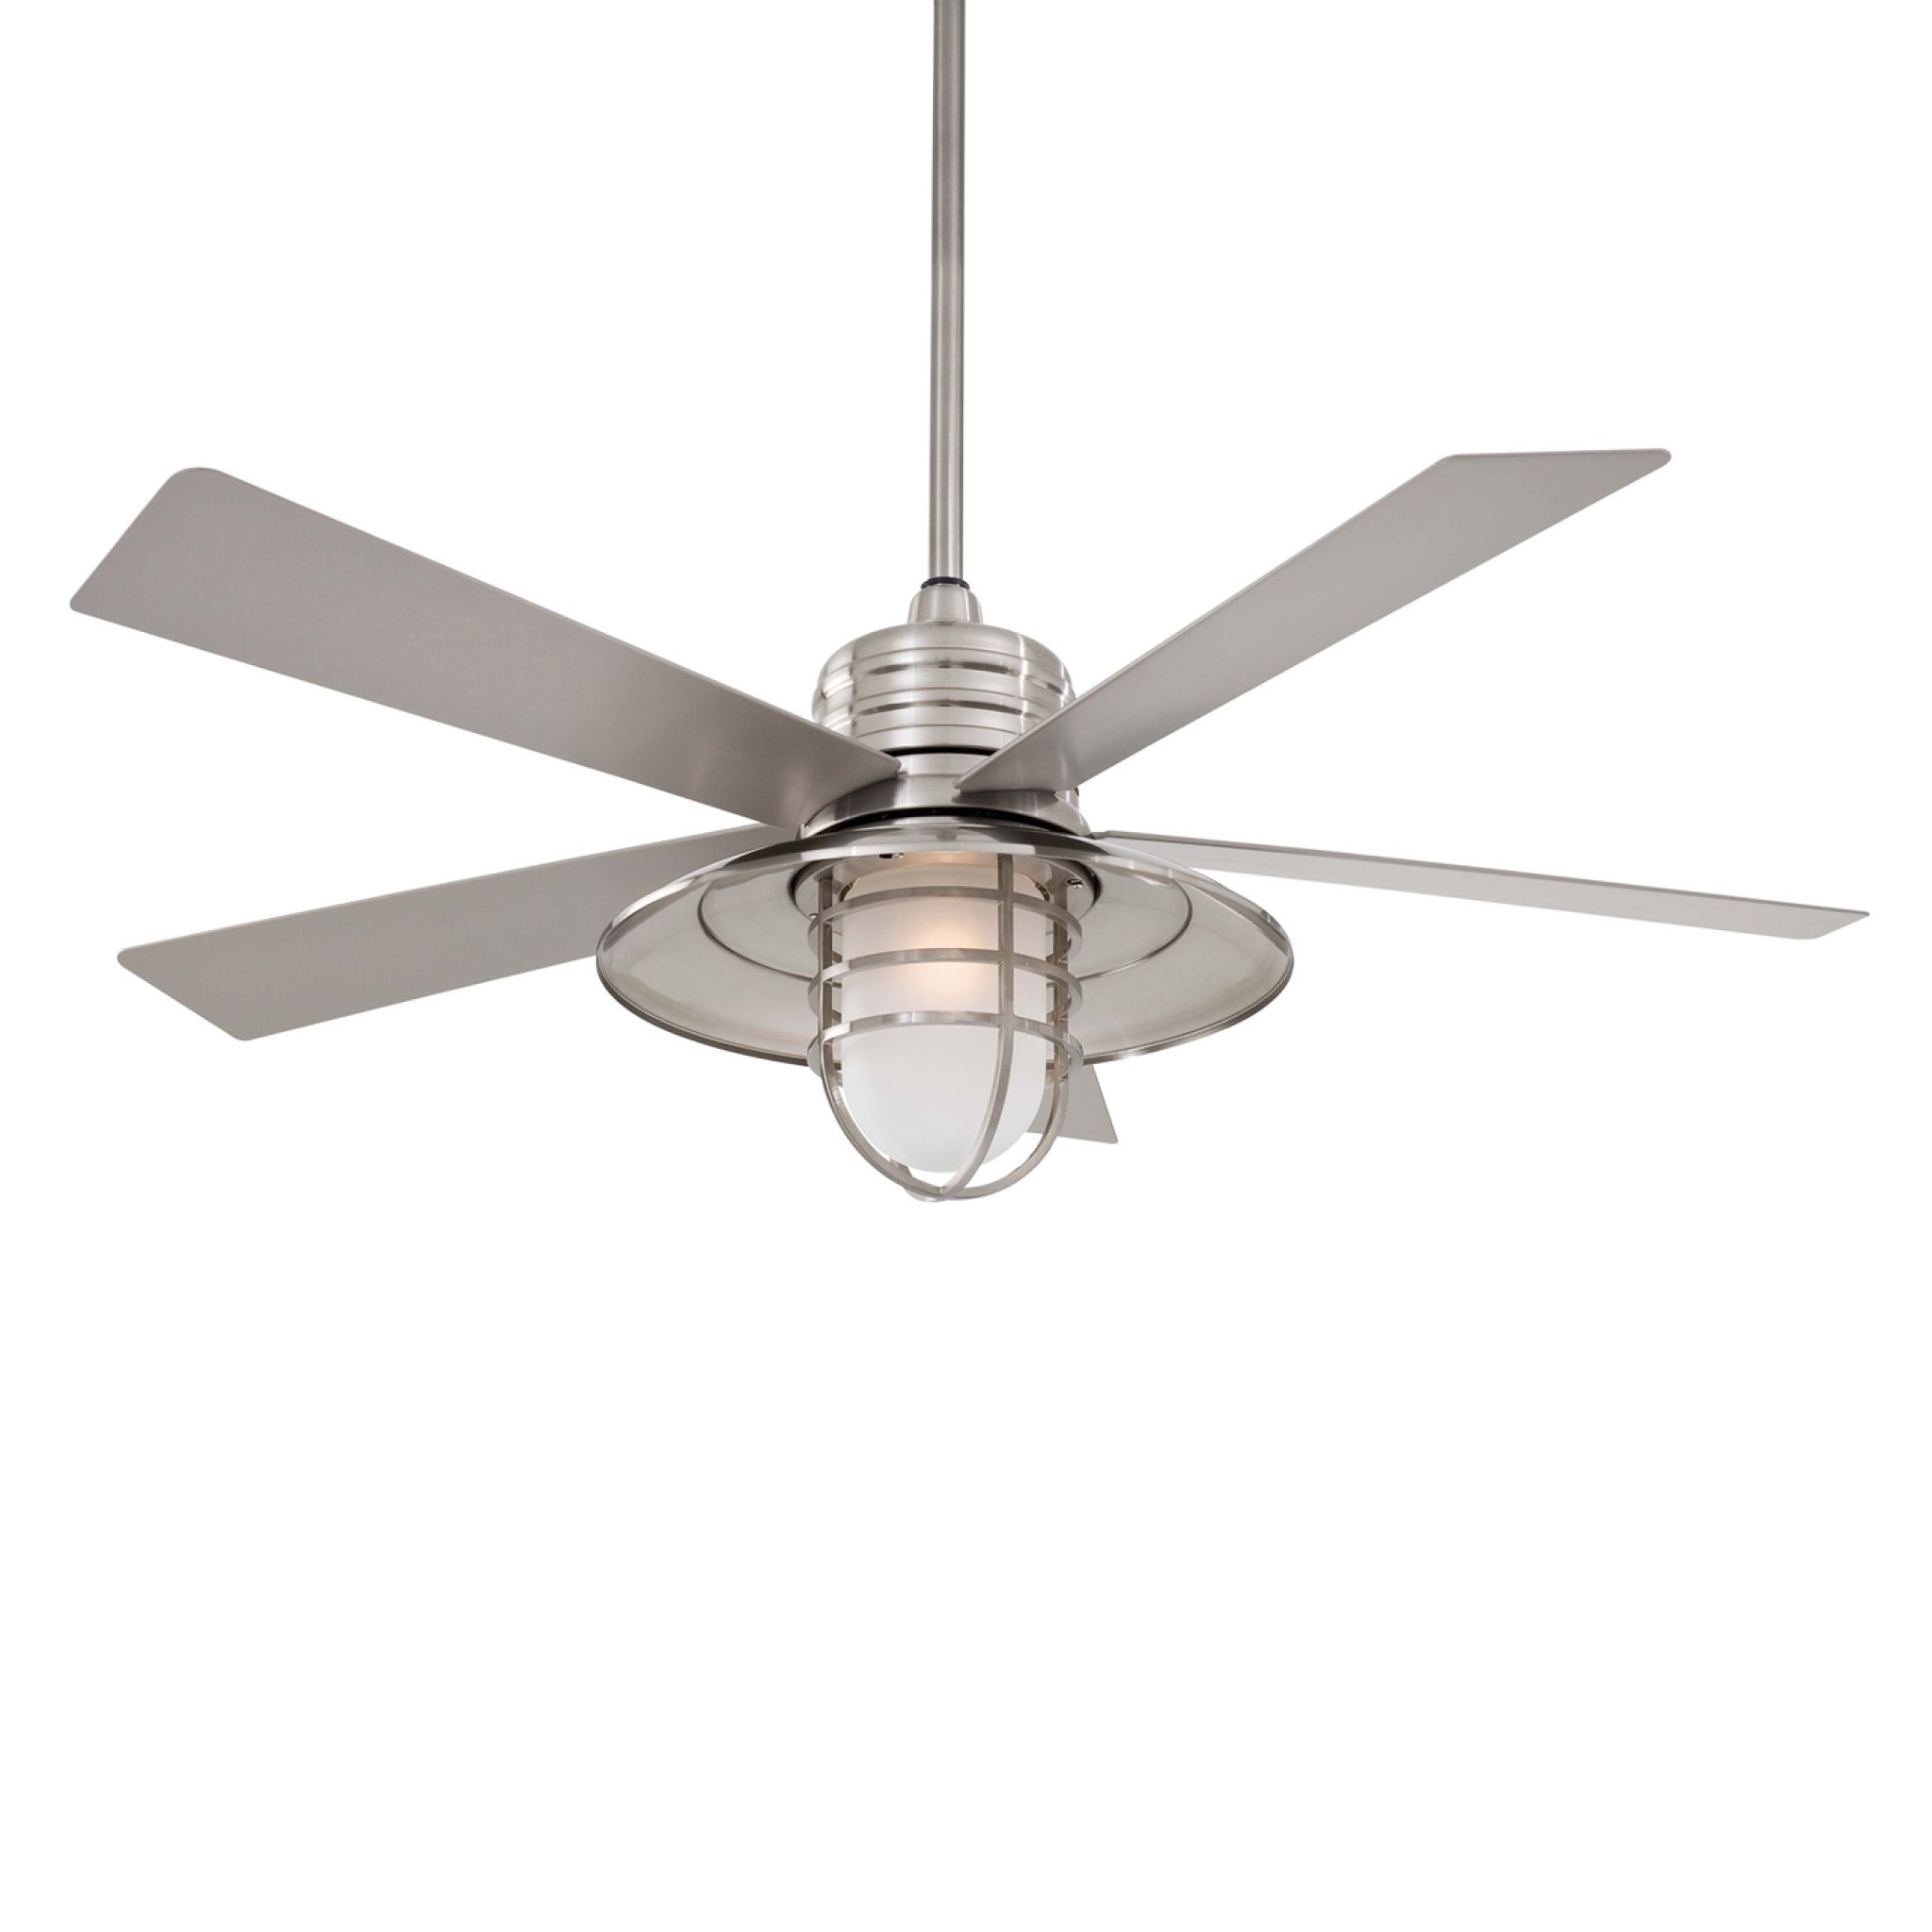 Most Recently Released Mini Outdoor Ceiling Fans With Lights Pertaining To Small Outdoor Ceiling Fan With Light – Best Paint For Interior Walls (View 13 of 20)